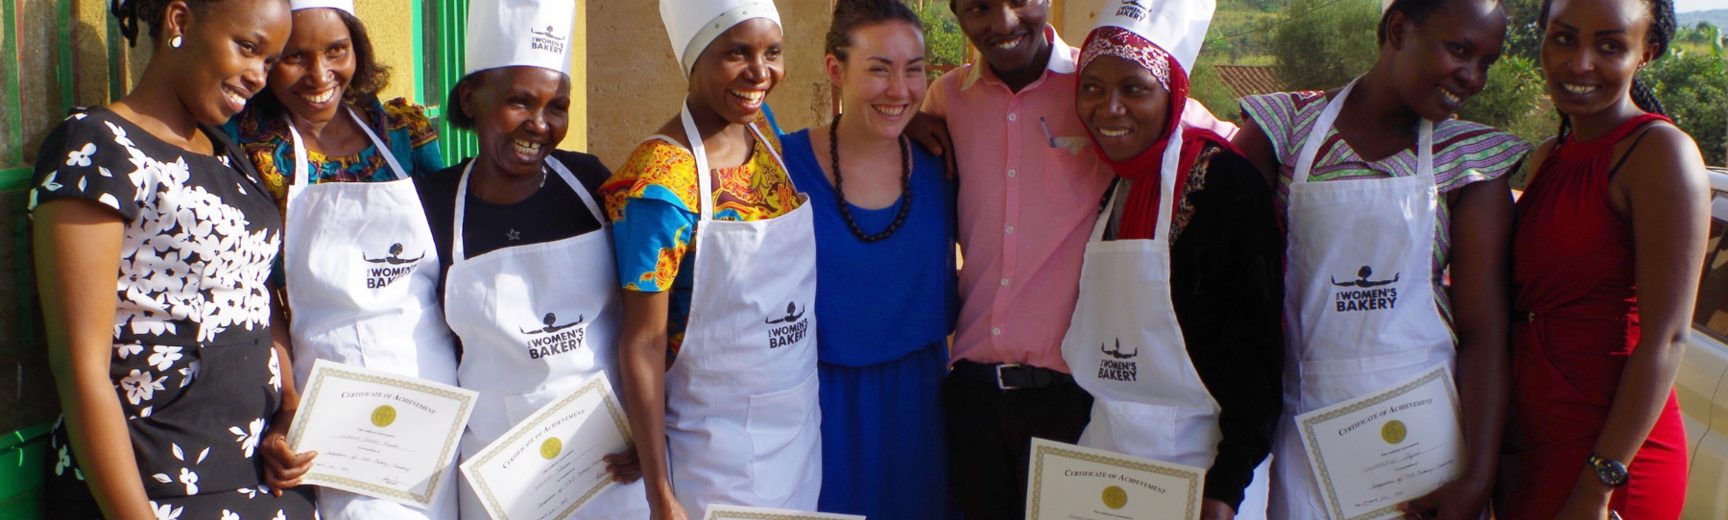 julie greene with the women's bakery team